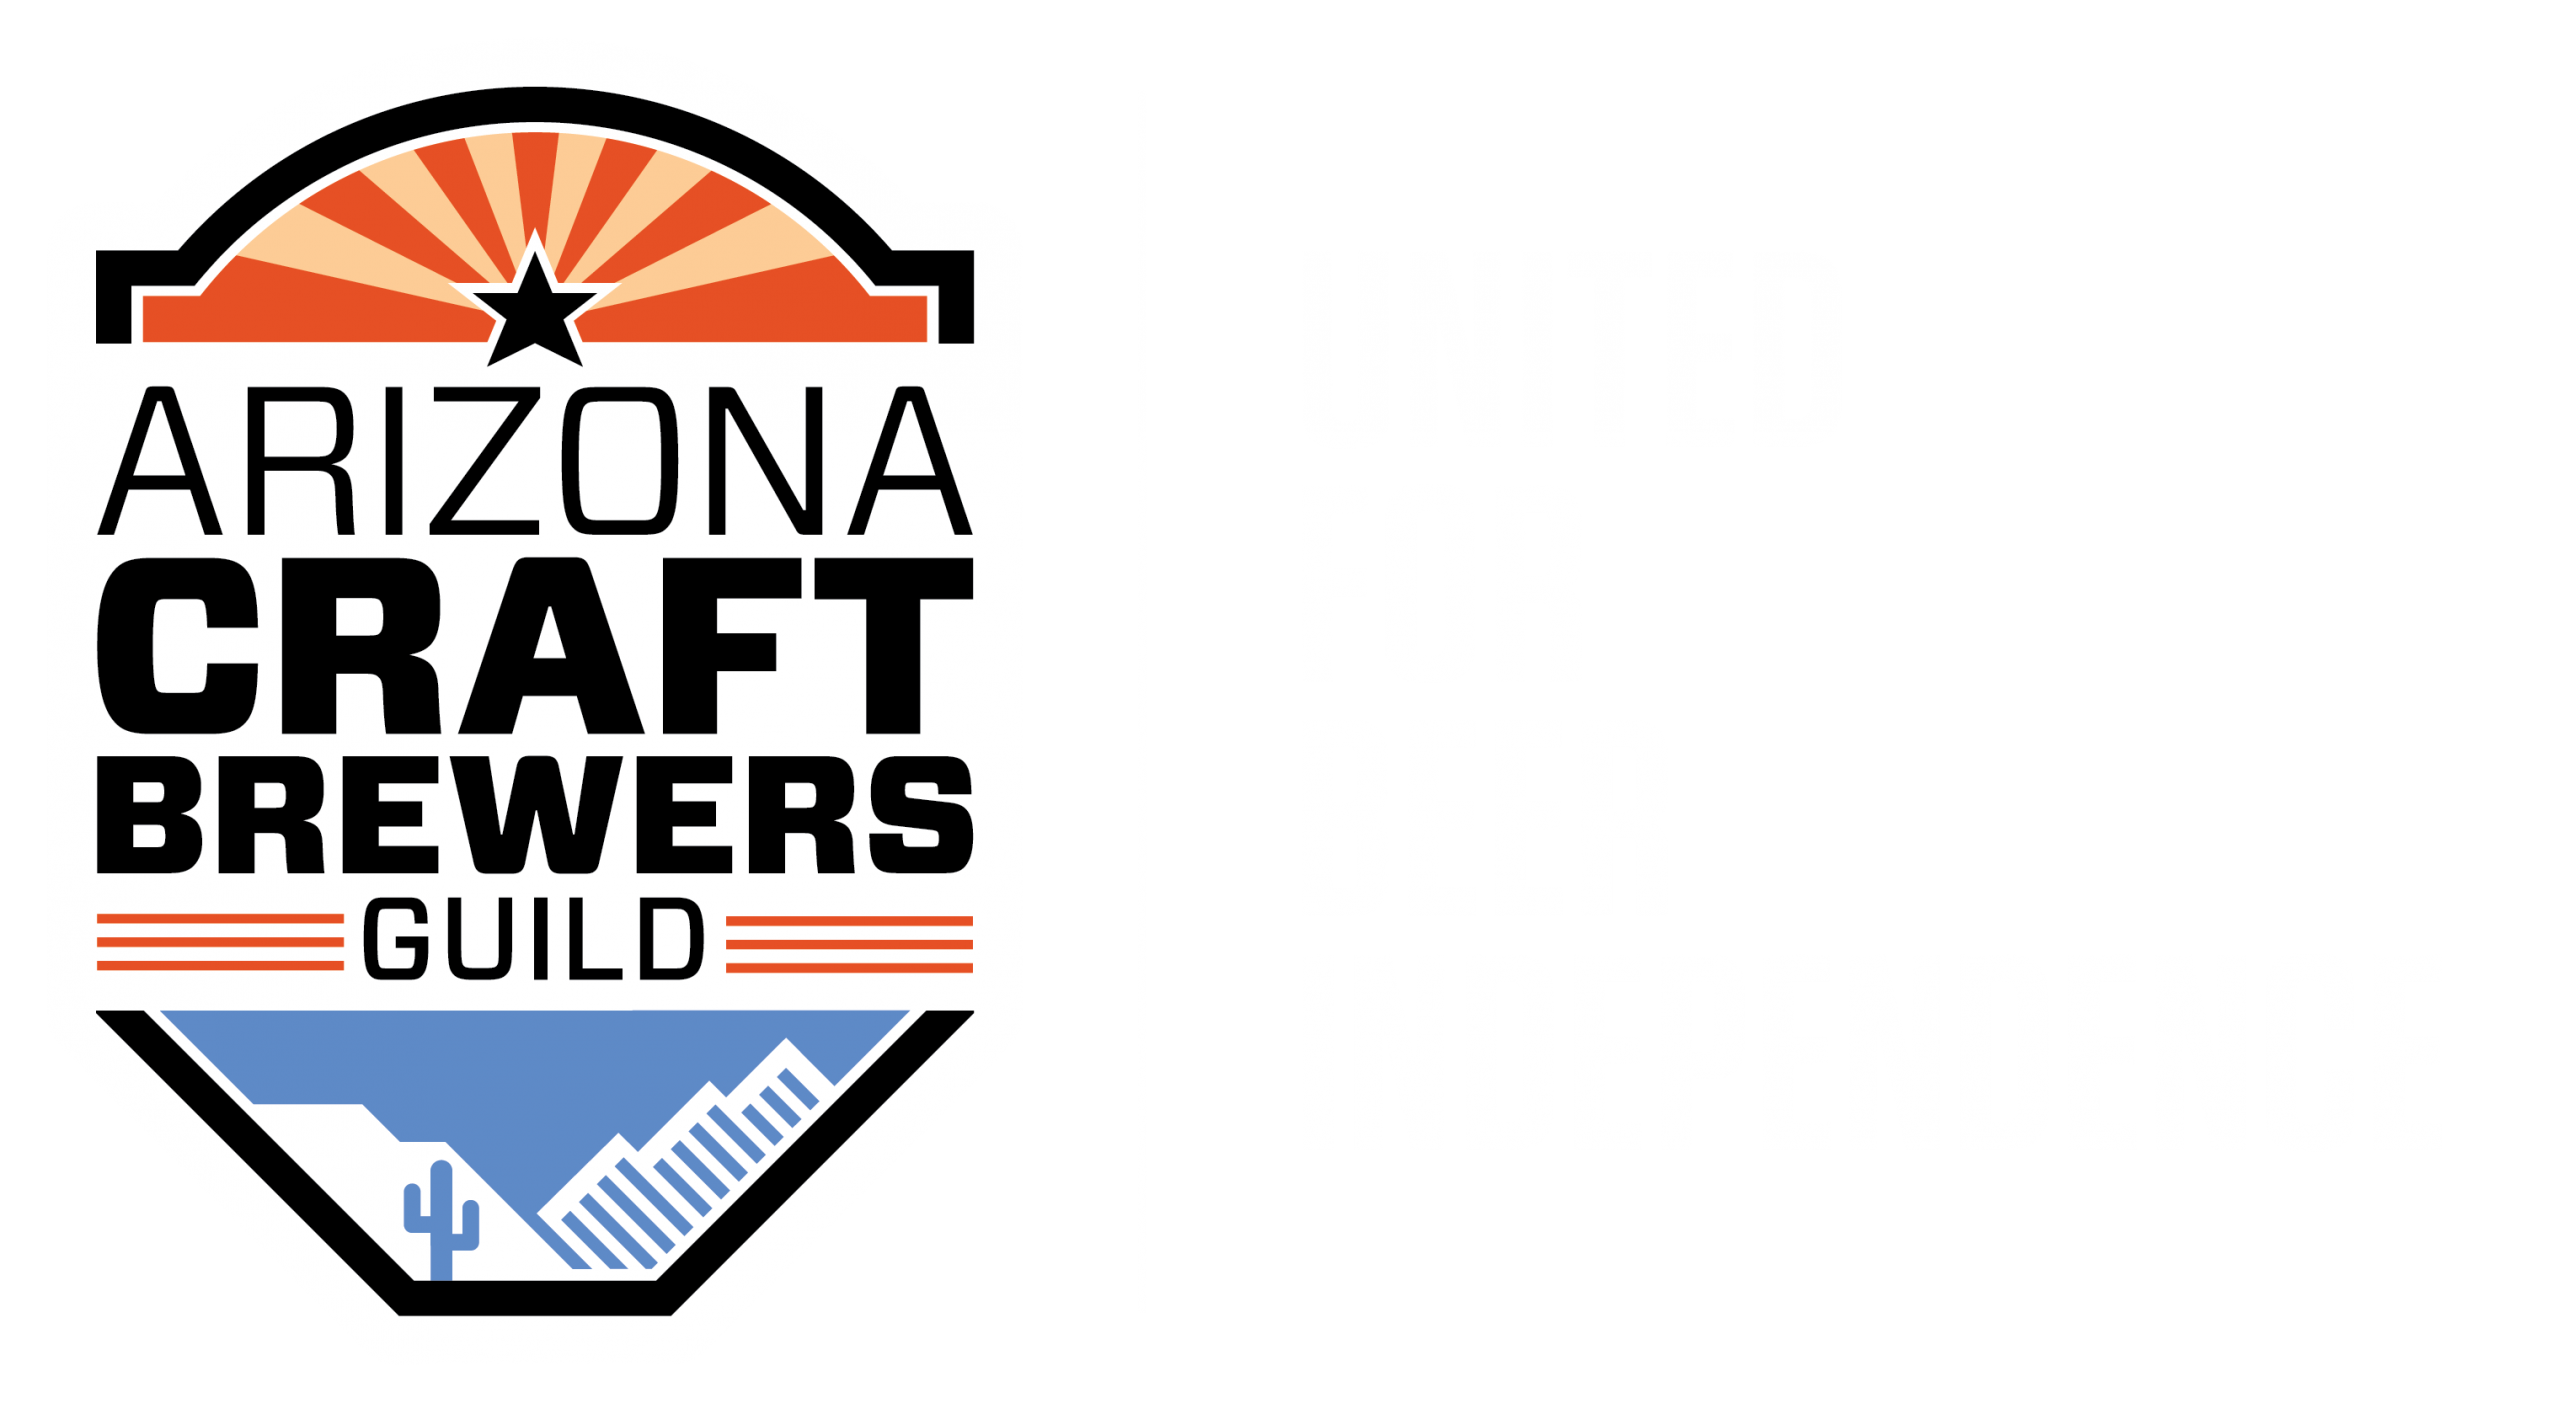 Bone Haus Brewing | Arizona Craft Brewers Guild